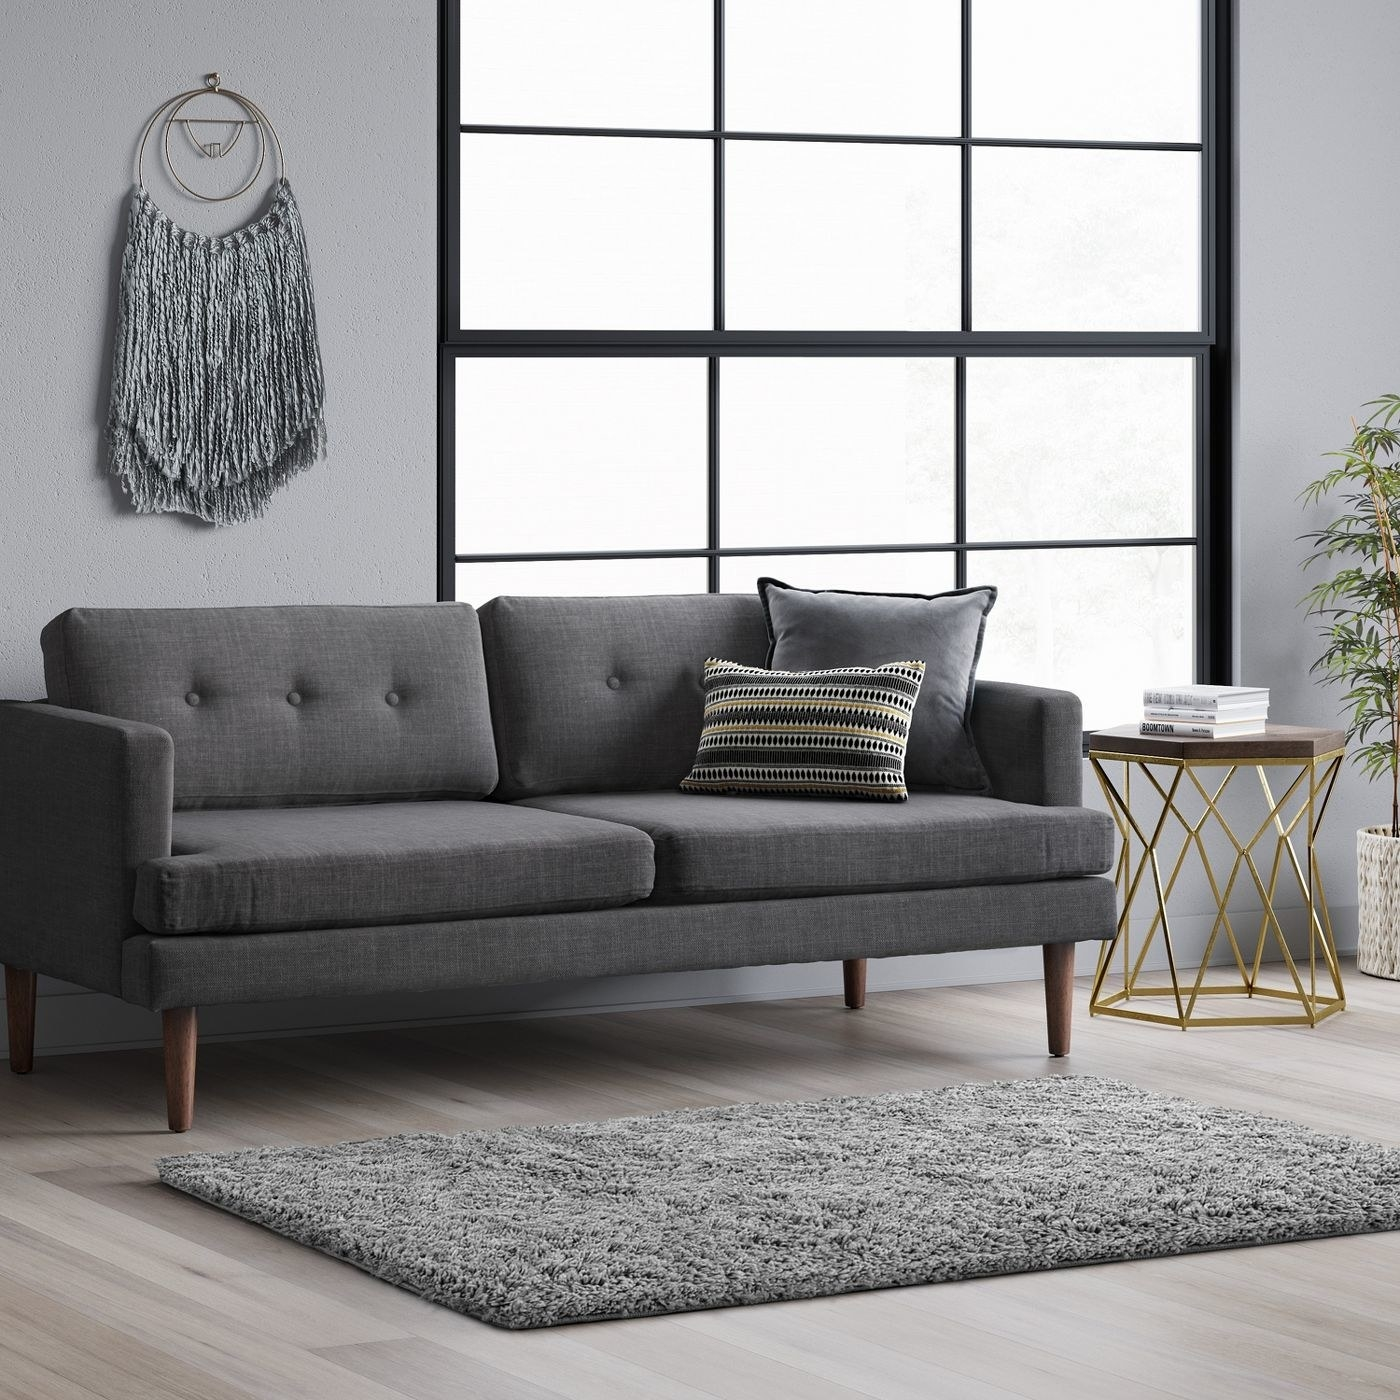 Plush gray shag rug on a hardwood floor below a gray couch with striped pillows